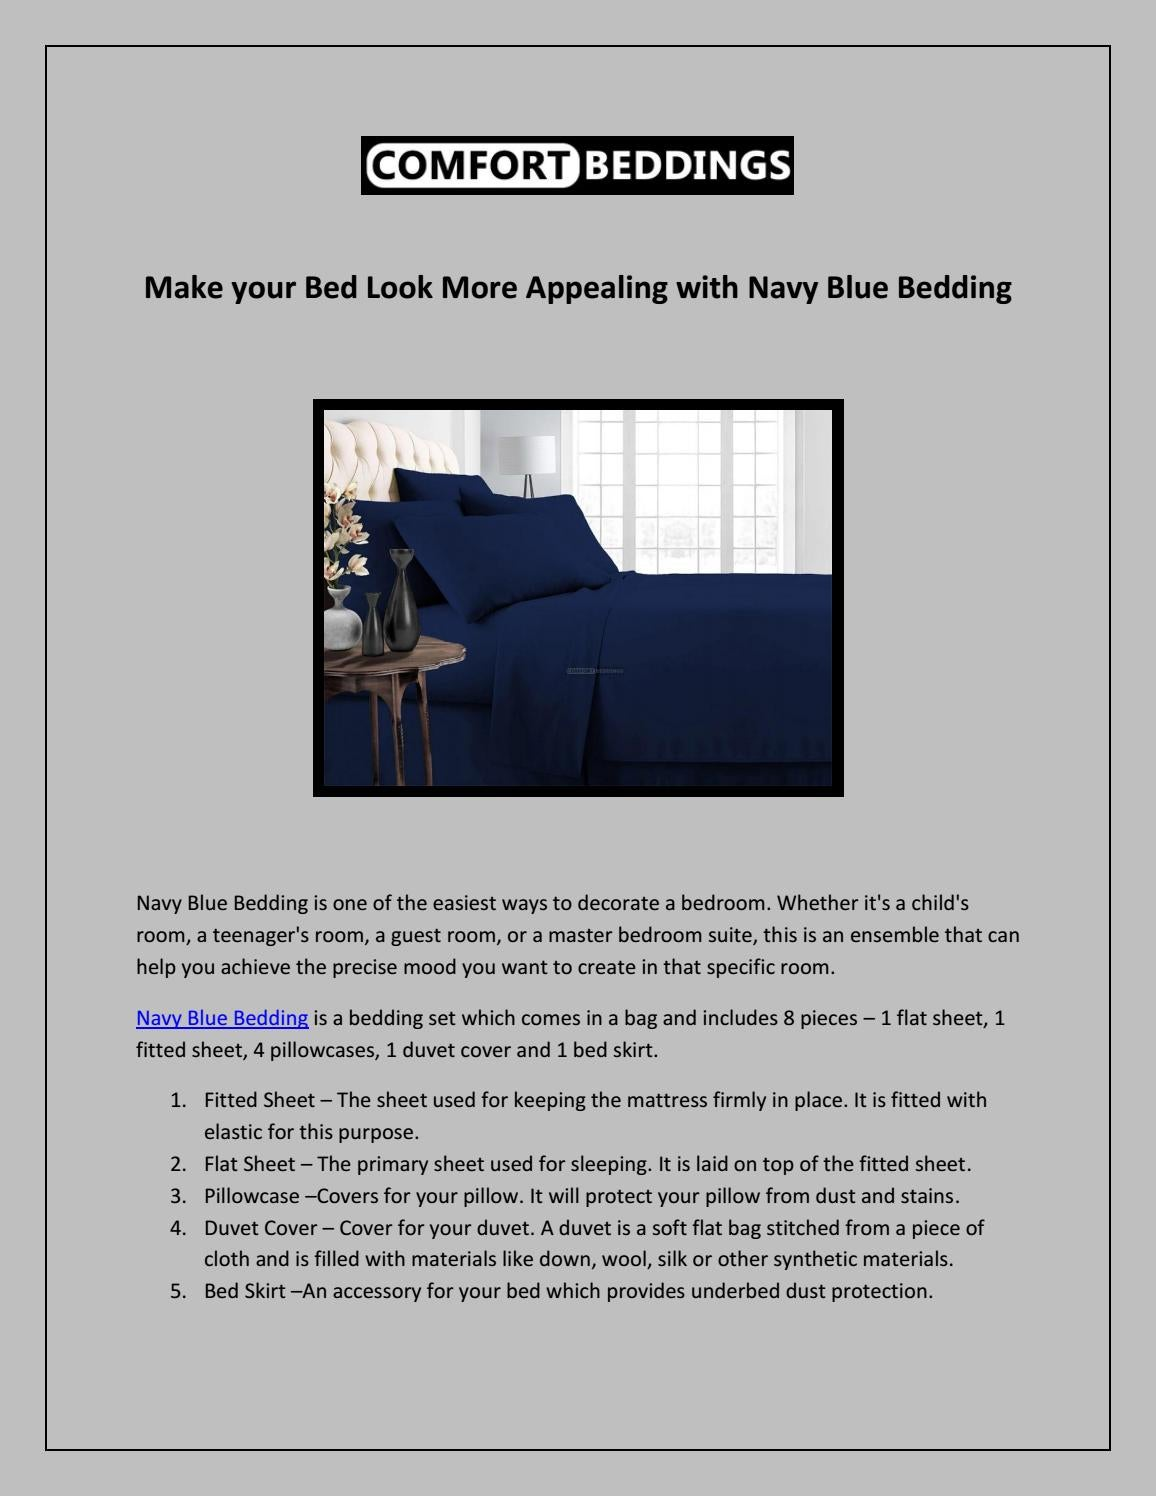 Make Your Bed Look More Appealing With Navy Blue Bedding By Navybluebedding Issuu